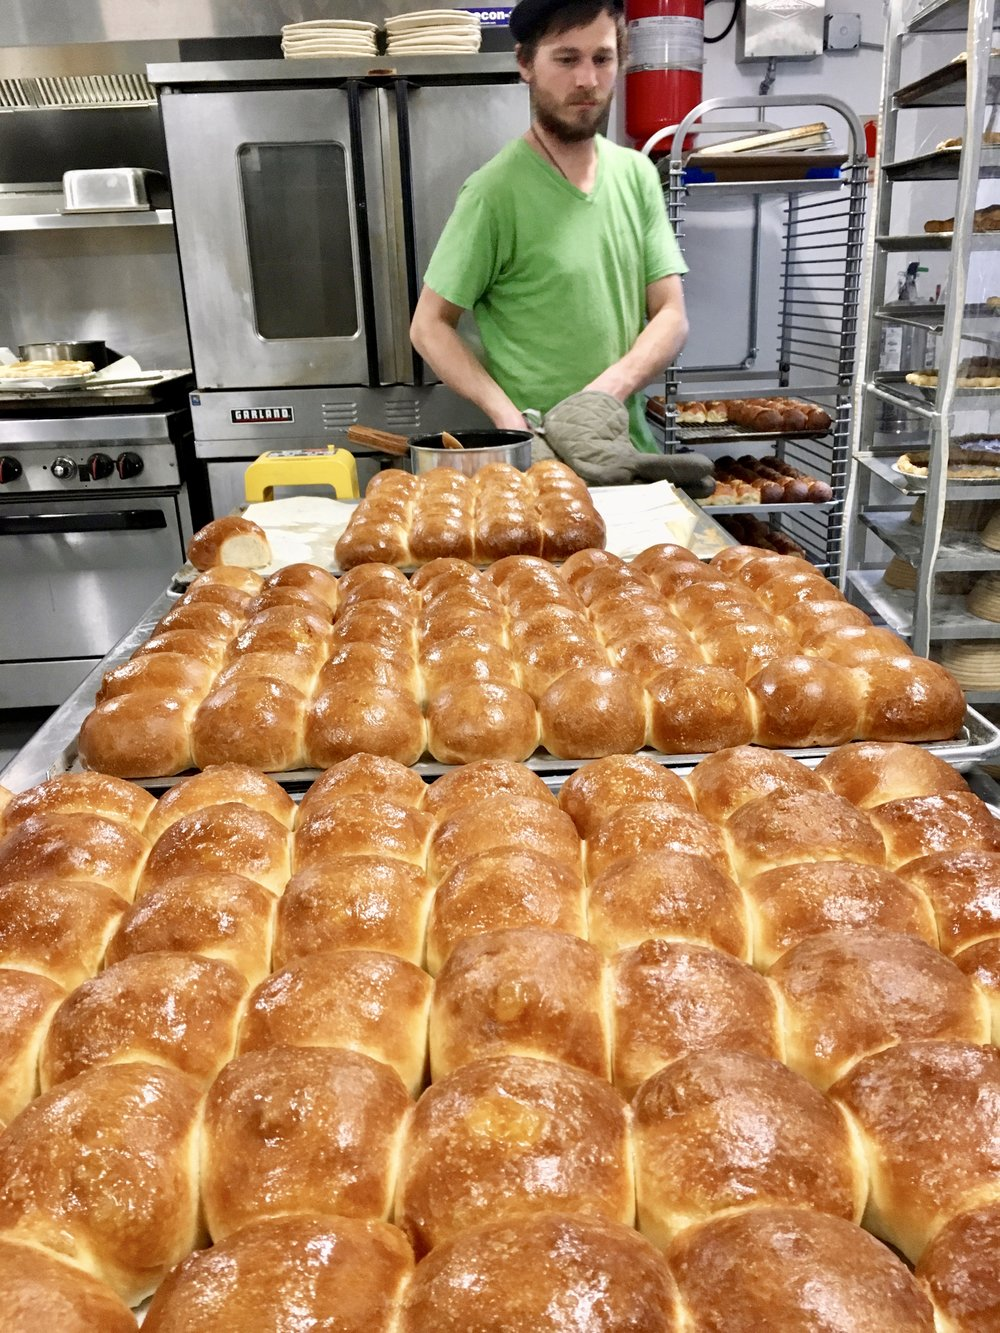 Dinner rolls for the holiday season.